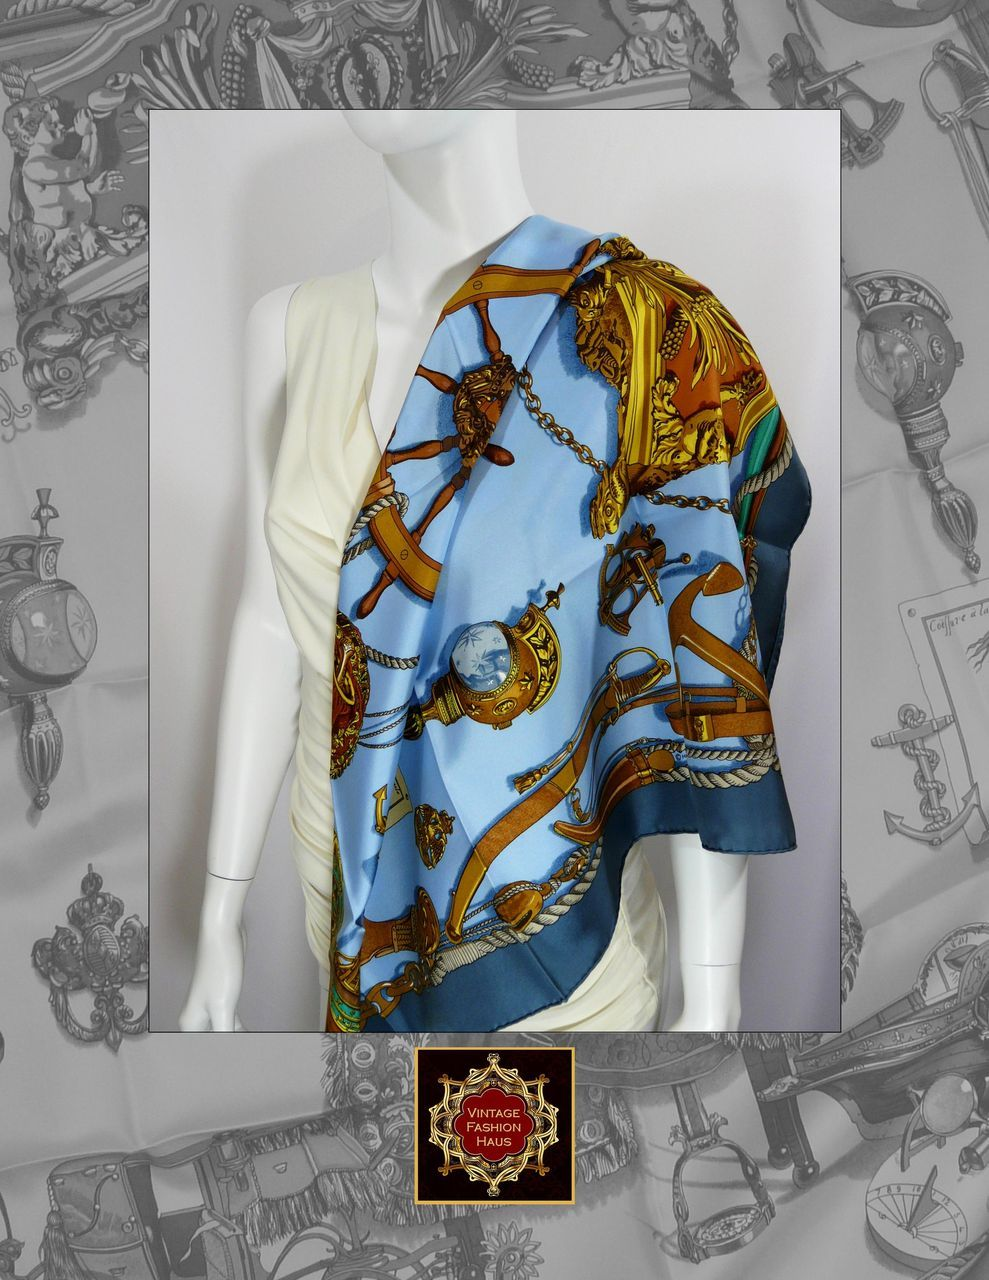 Authentic Vintage Hermes Silk Scarf  Carre MUSEE from  Authentic Hermes Scarves